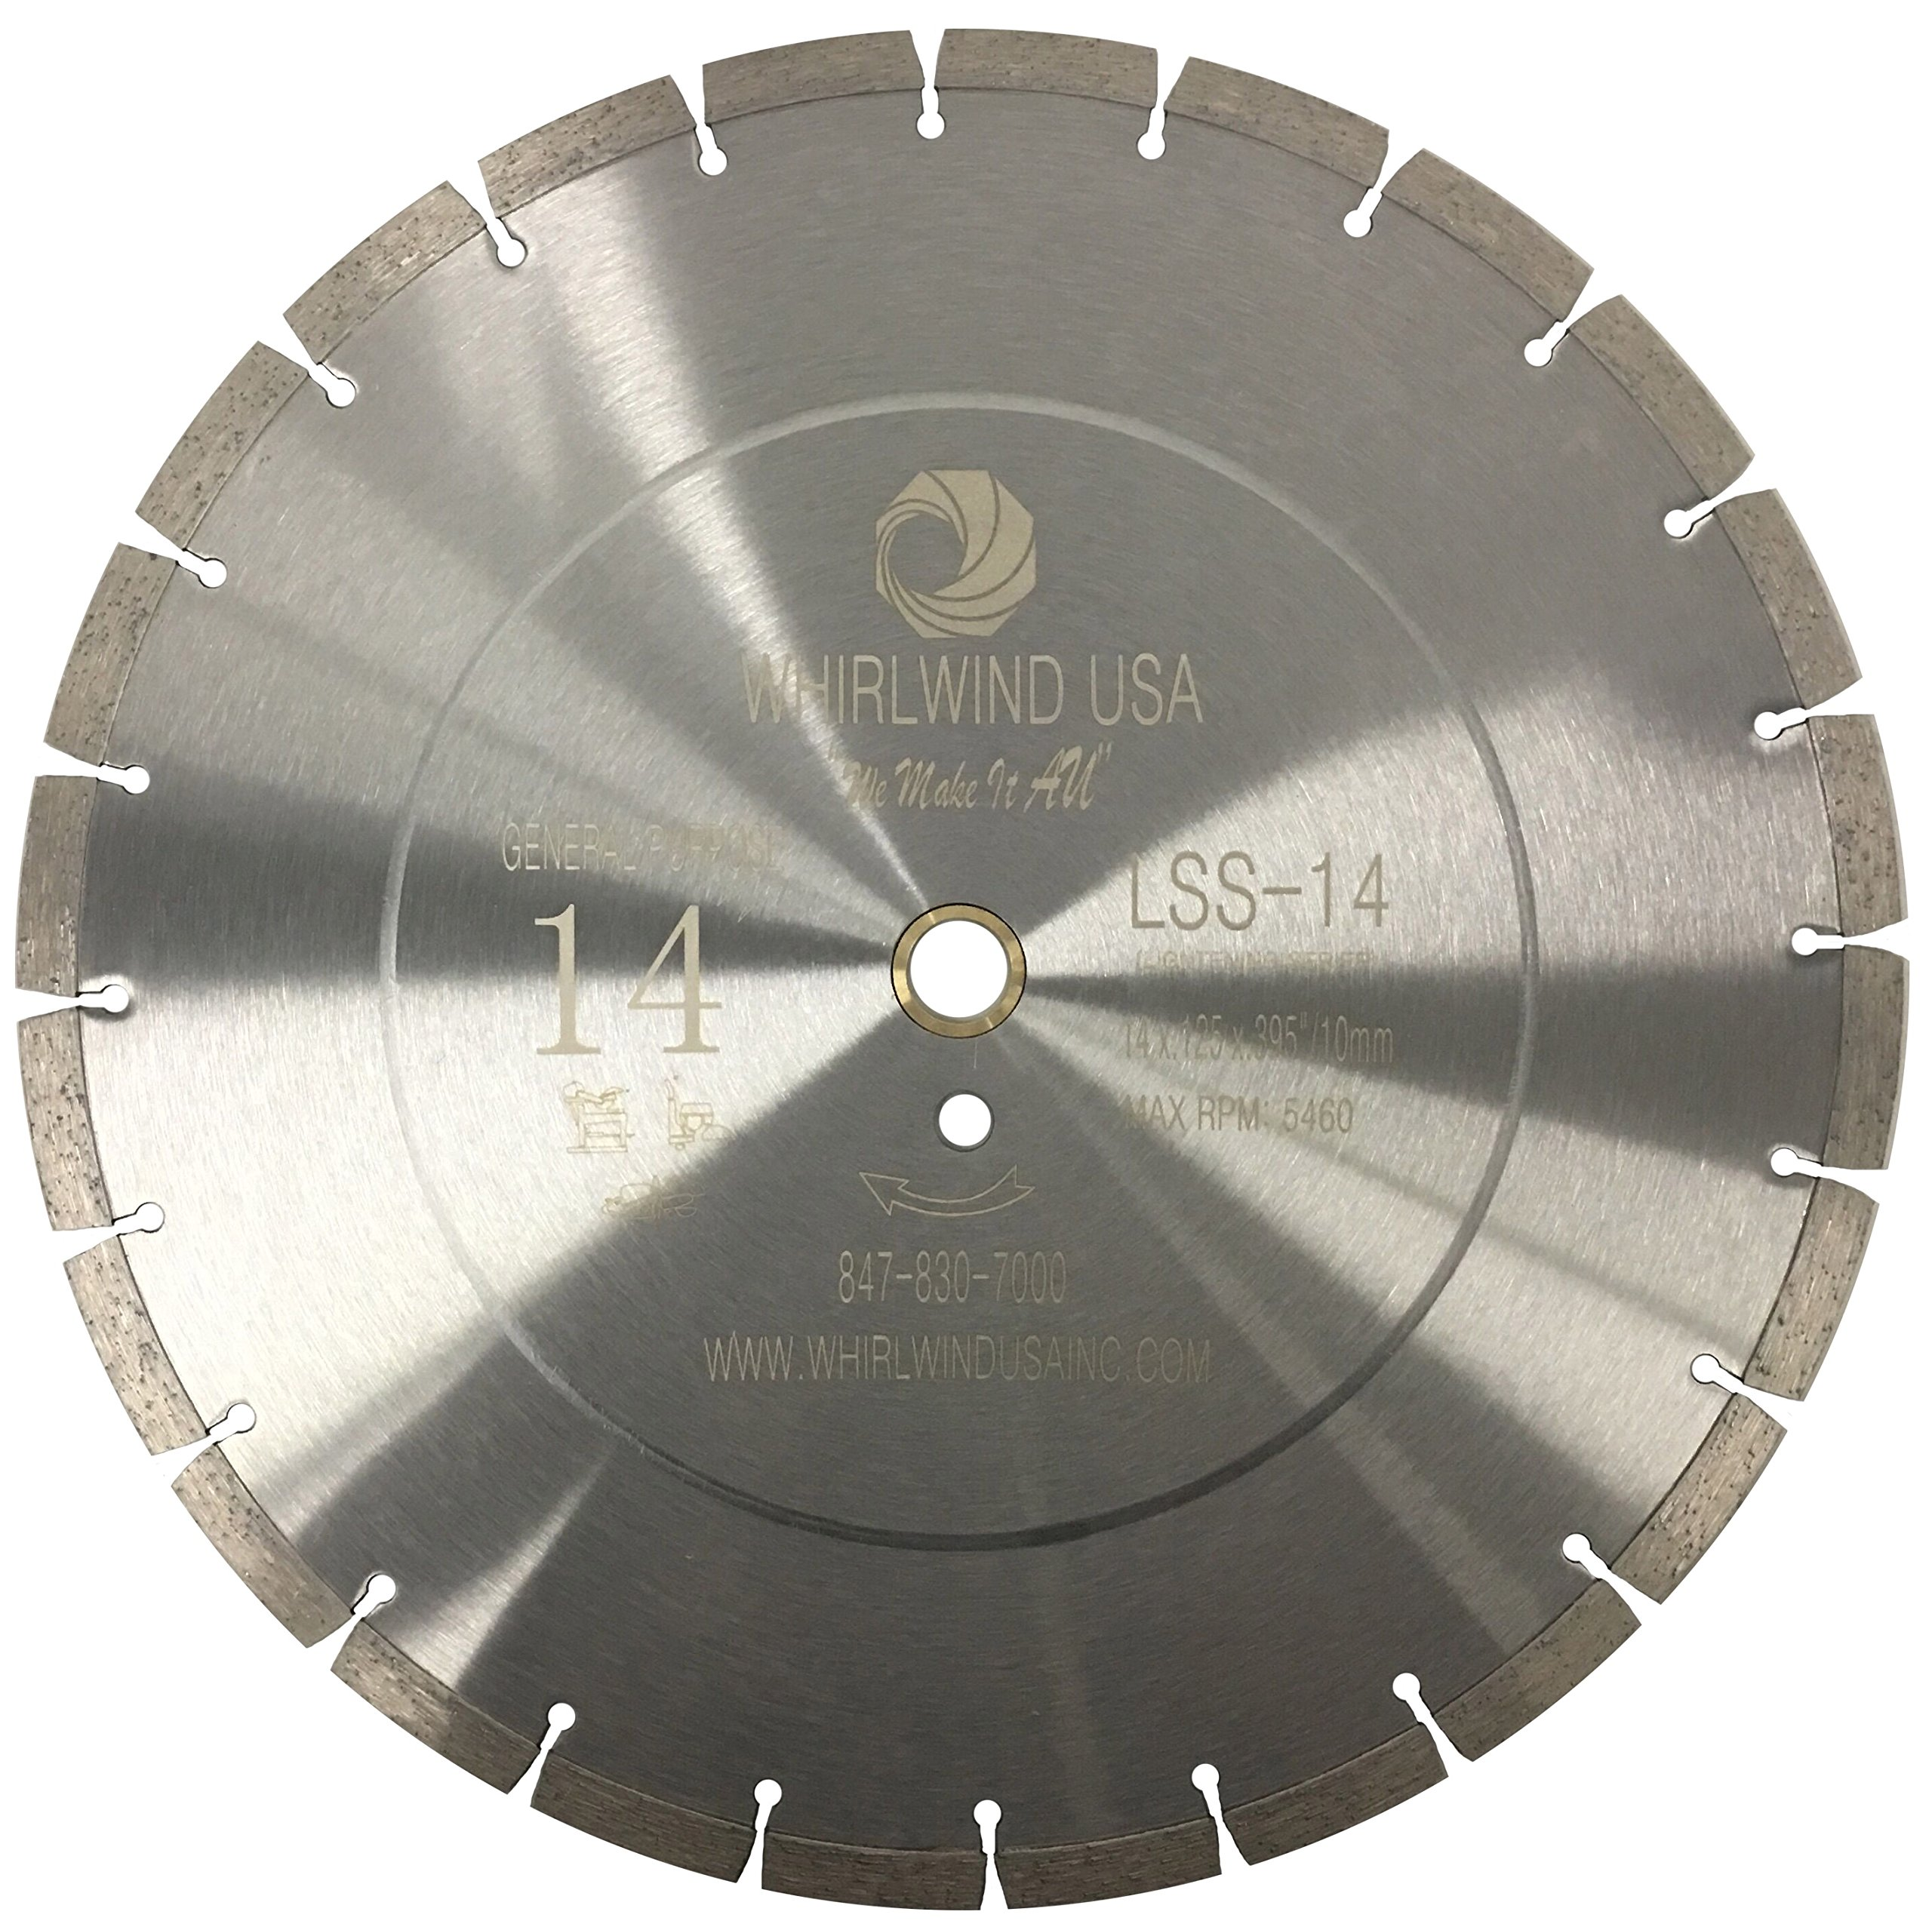 Whirlwind USA LSS 14 in. Dry or Wet Cutting General Purpose Power Saw Segmented Diamond Blades for Concrete Stone Brick Masonry (14'')